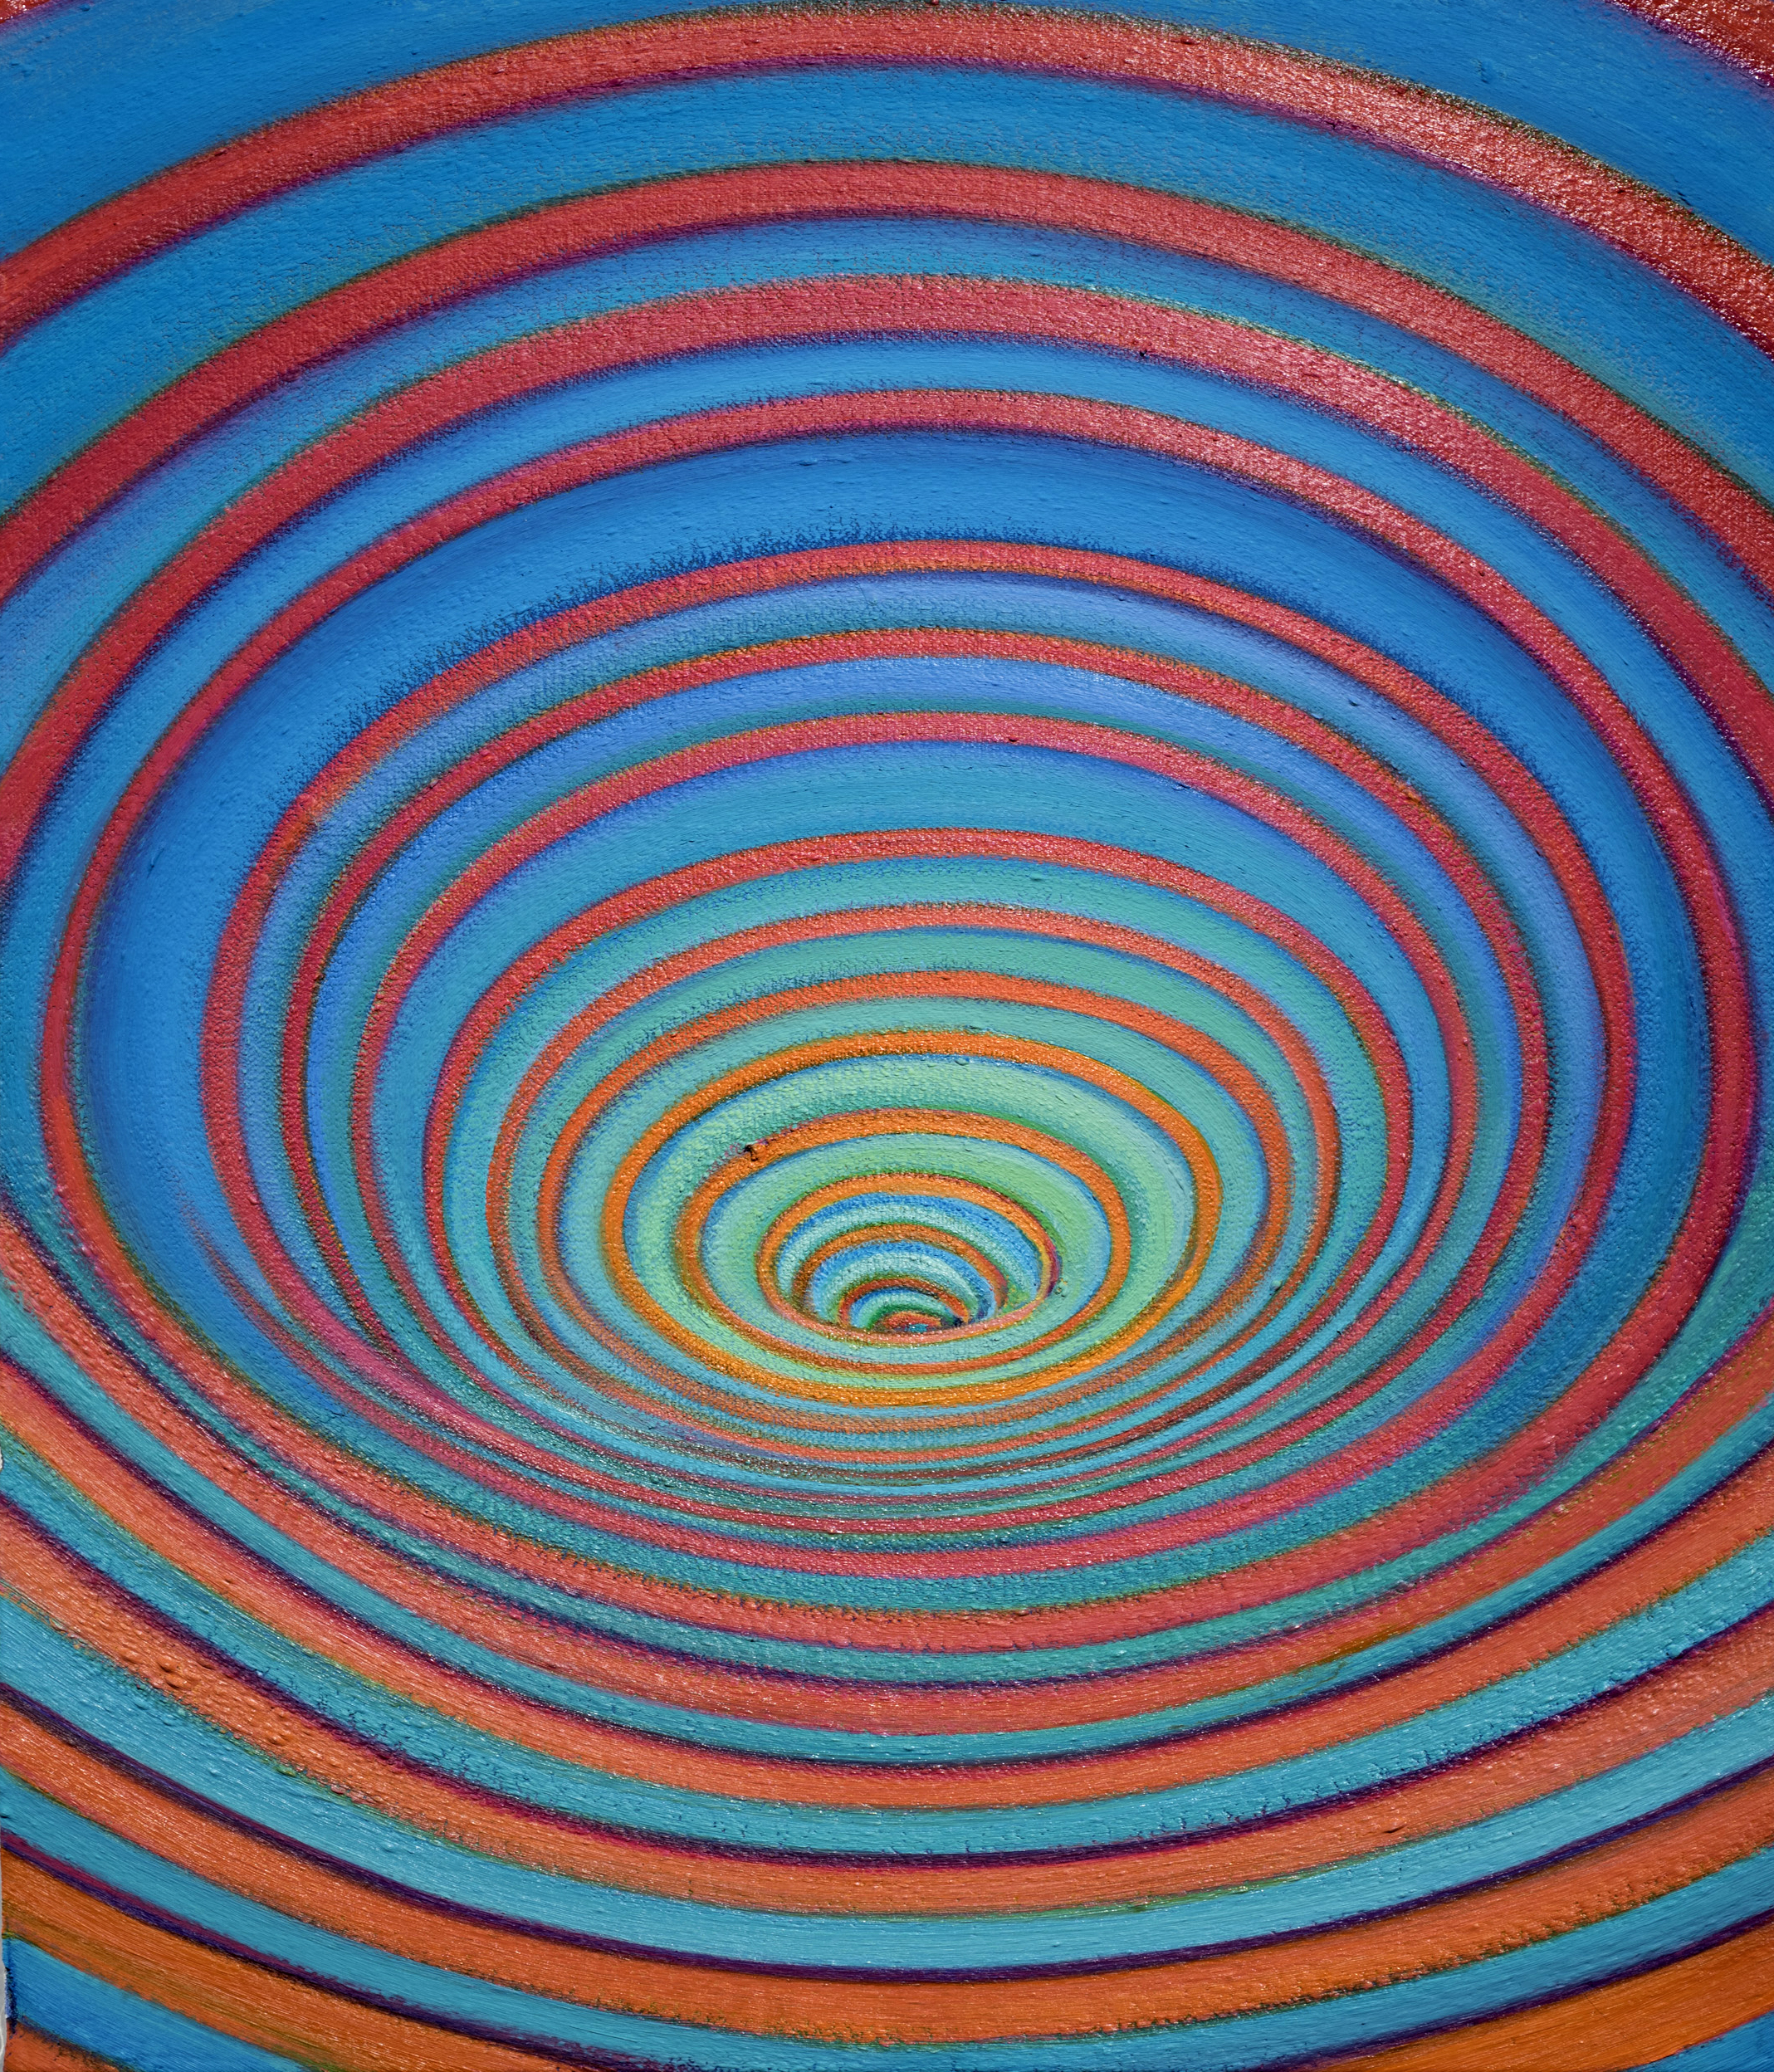 Ripple Ellipse: Vortex